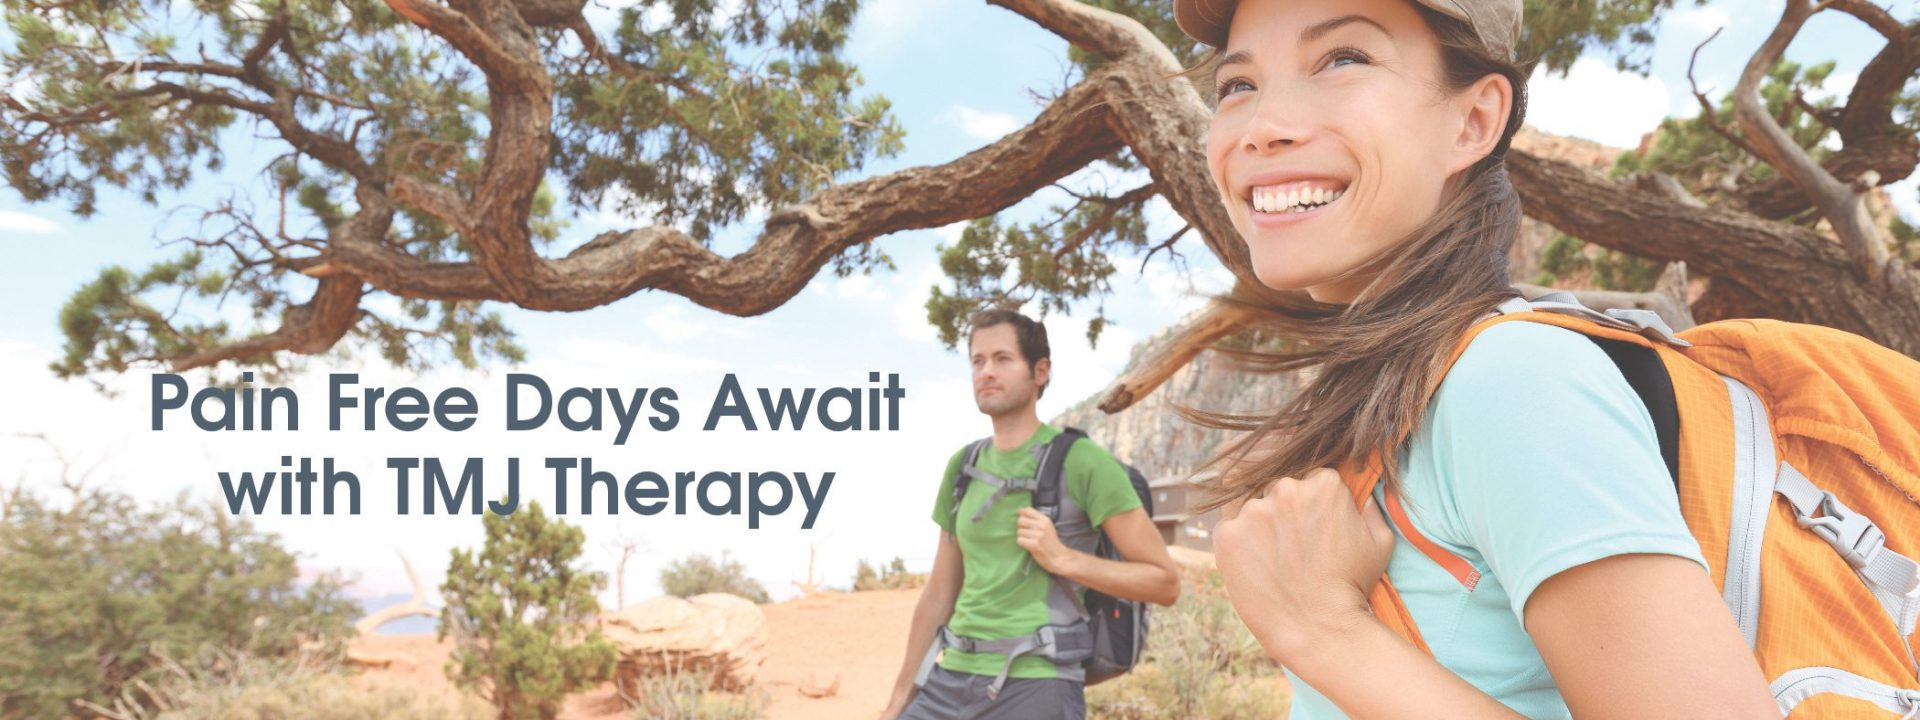 Pain Free Days Await with TMJ Therapy